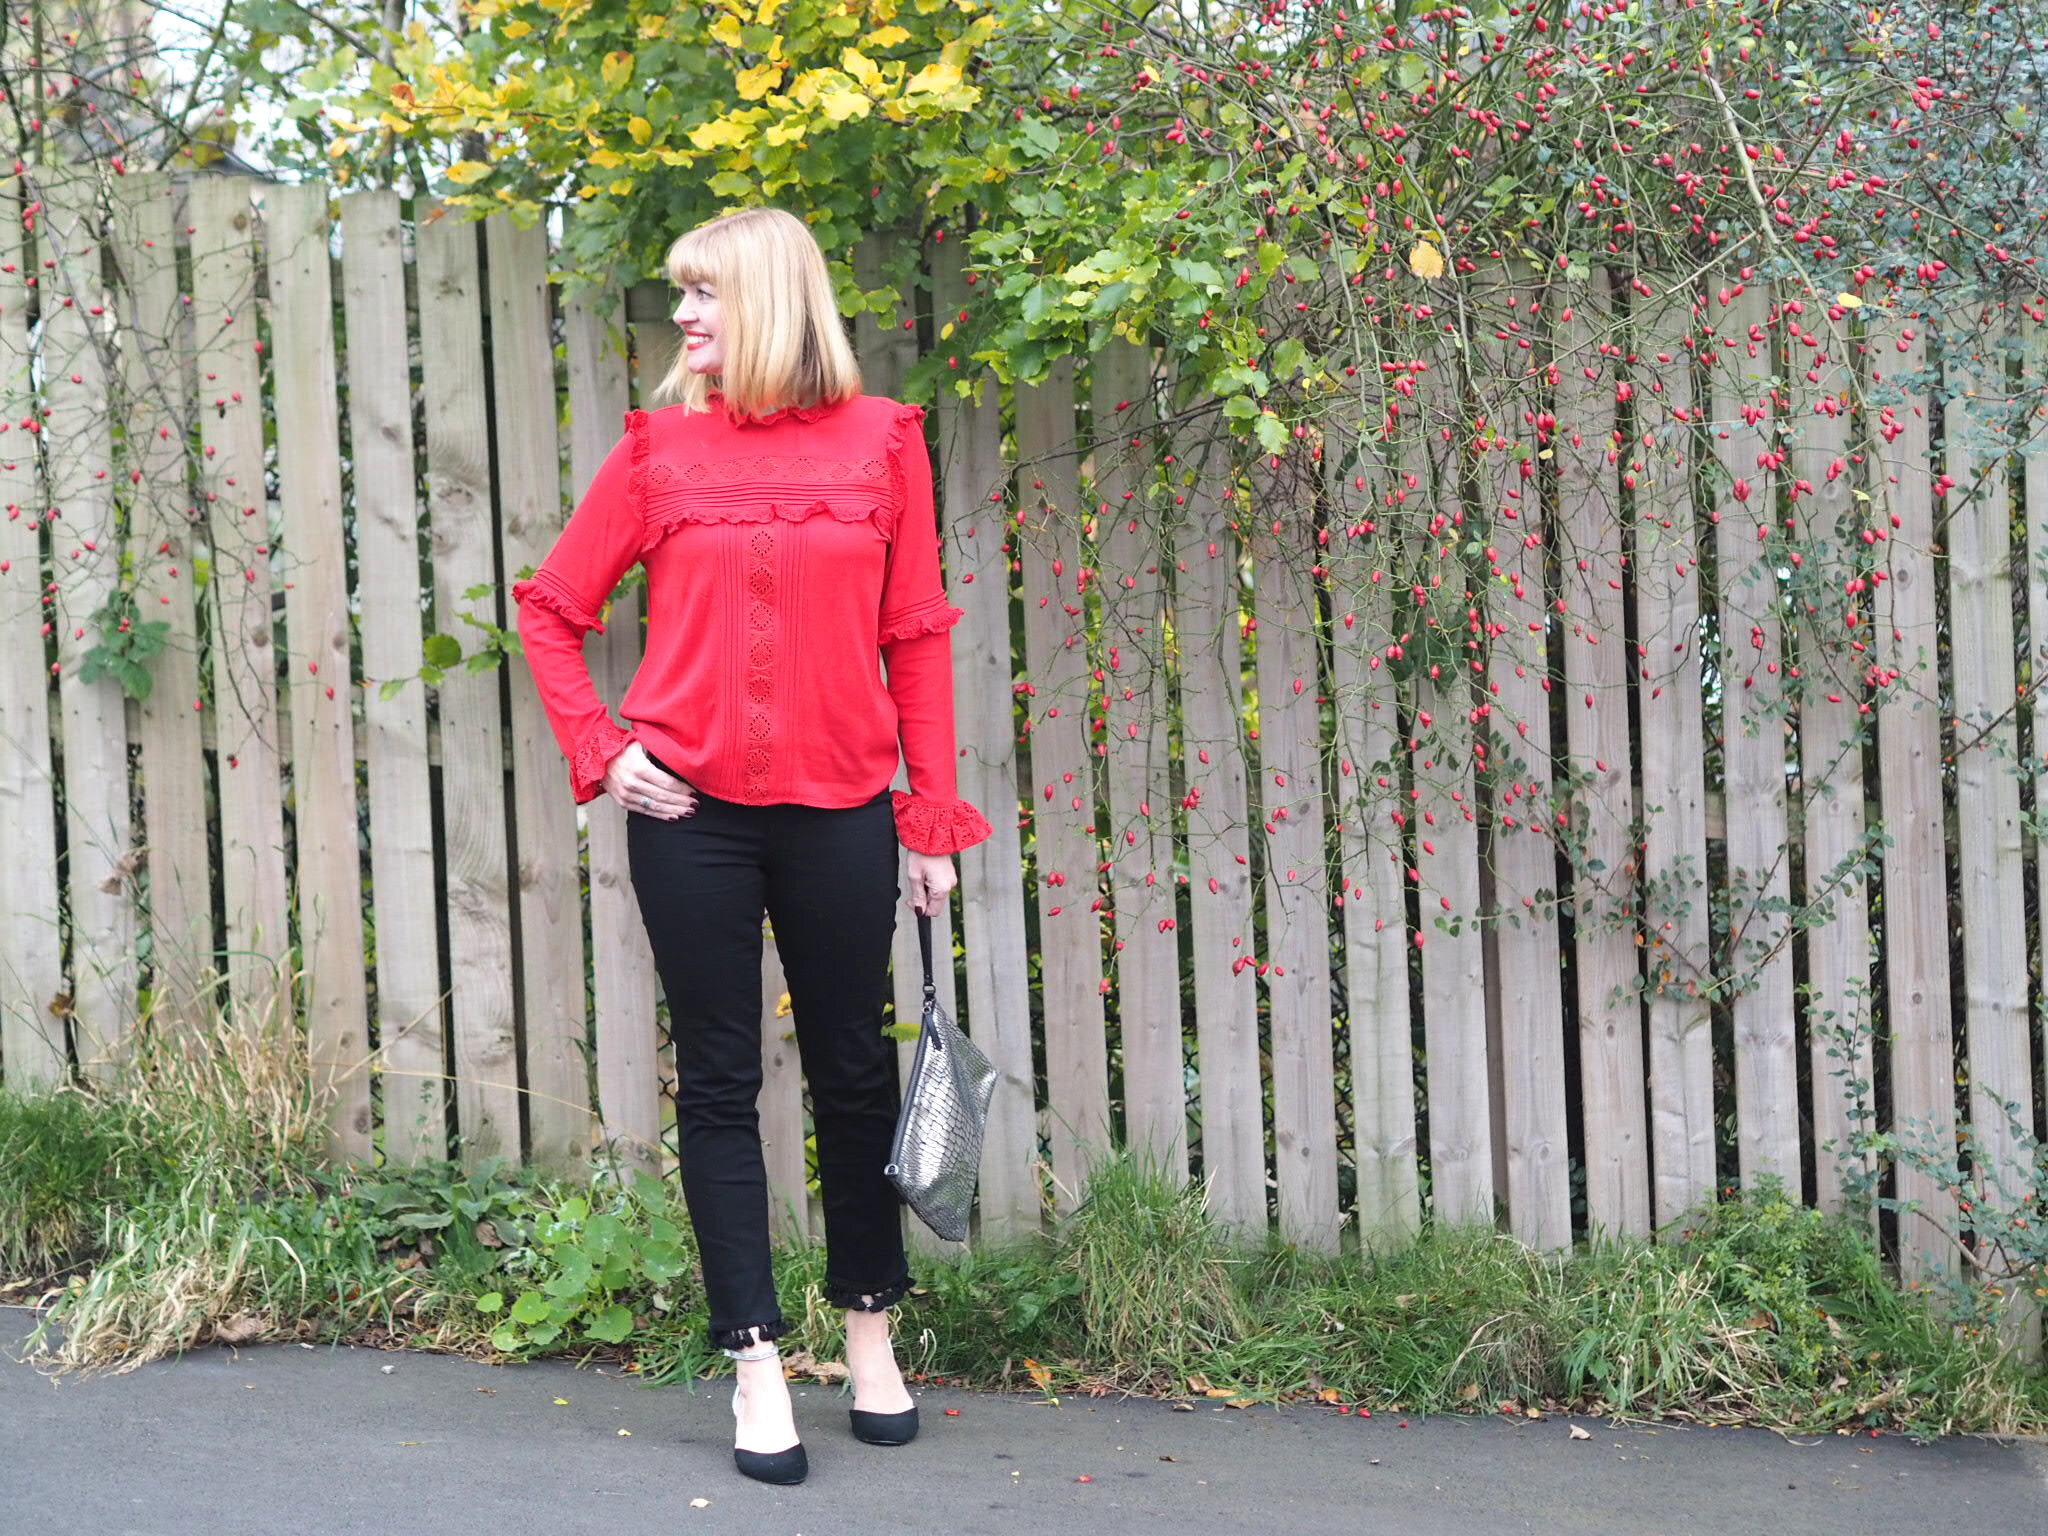 Pom Pom Jeans, A Red Ruffle Blouse And A Touch Of Glitter.